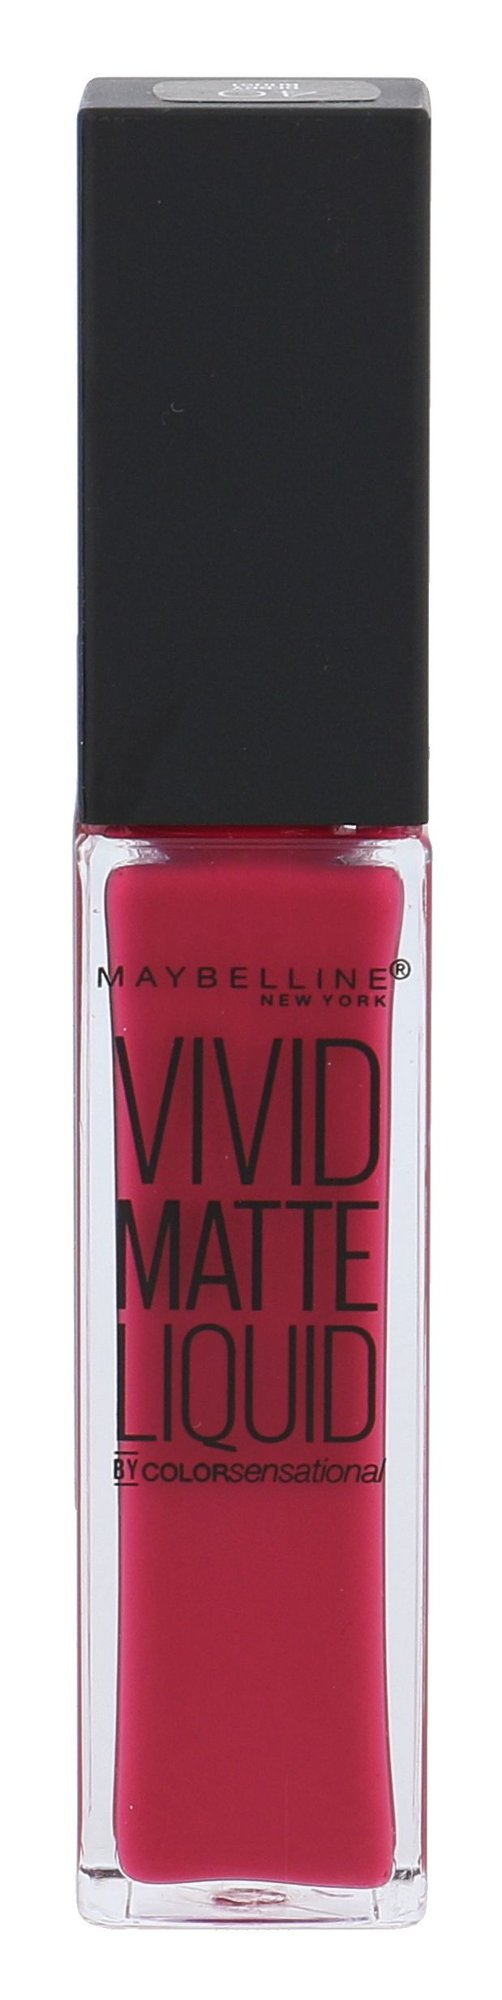 Maybelline Color Sensational Cosmetic 8ml 40 Berry Boost Vivid Matte Liquid